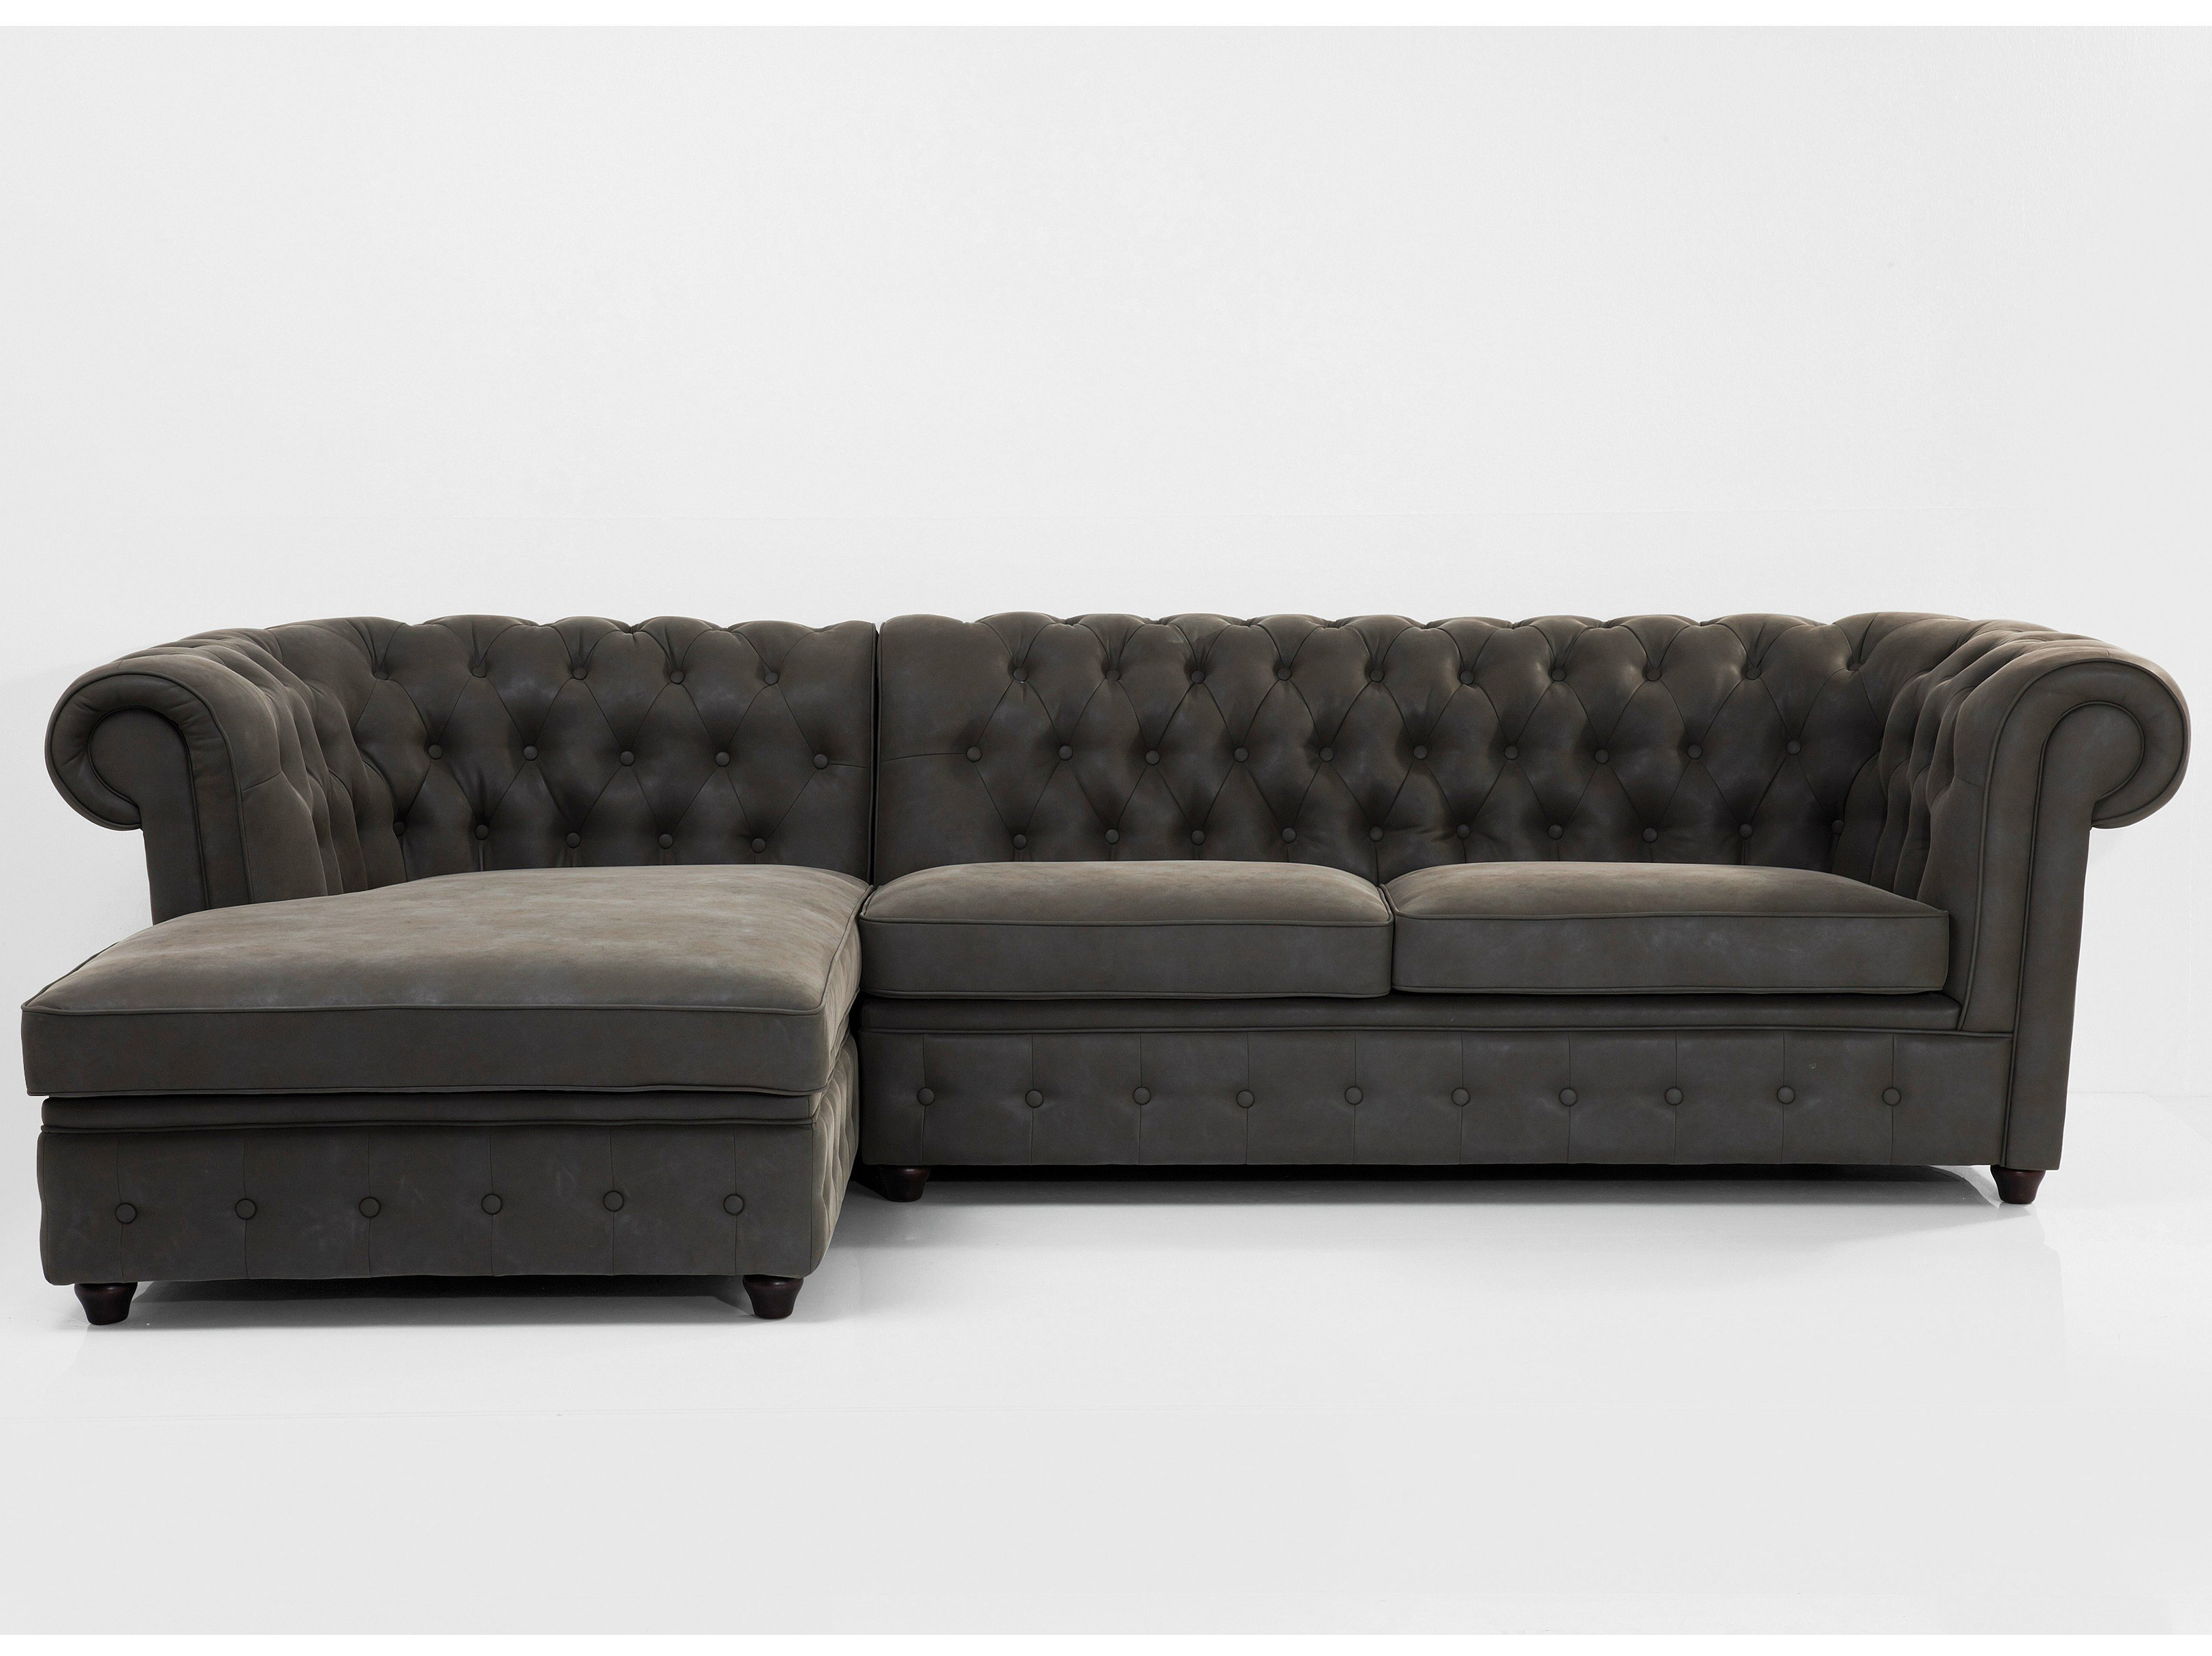 chesterfield sofa kare design hereo sofa. Black Bedroom Furniture Sets. Home Design Ideas